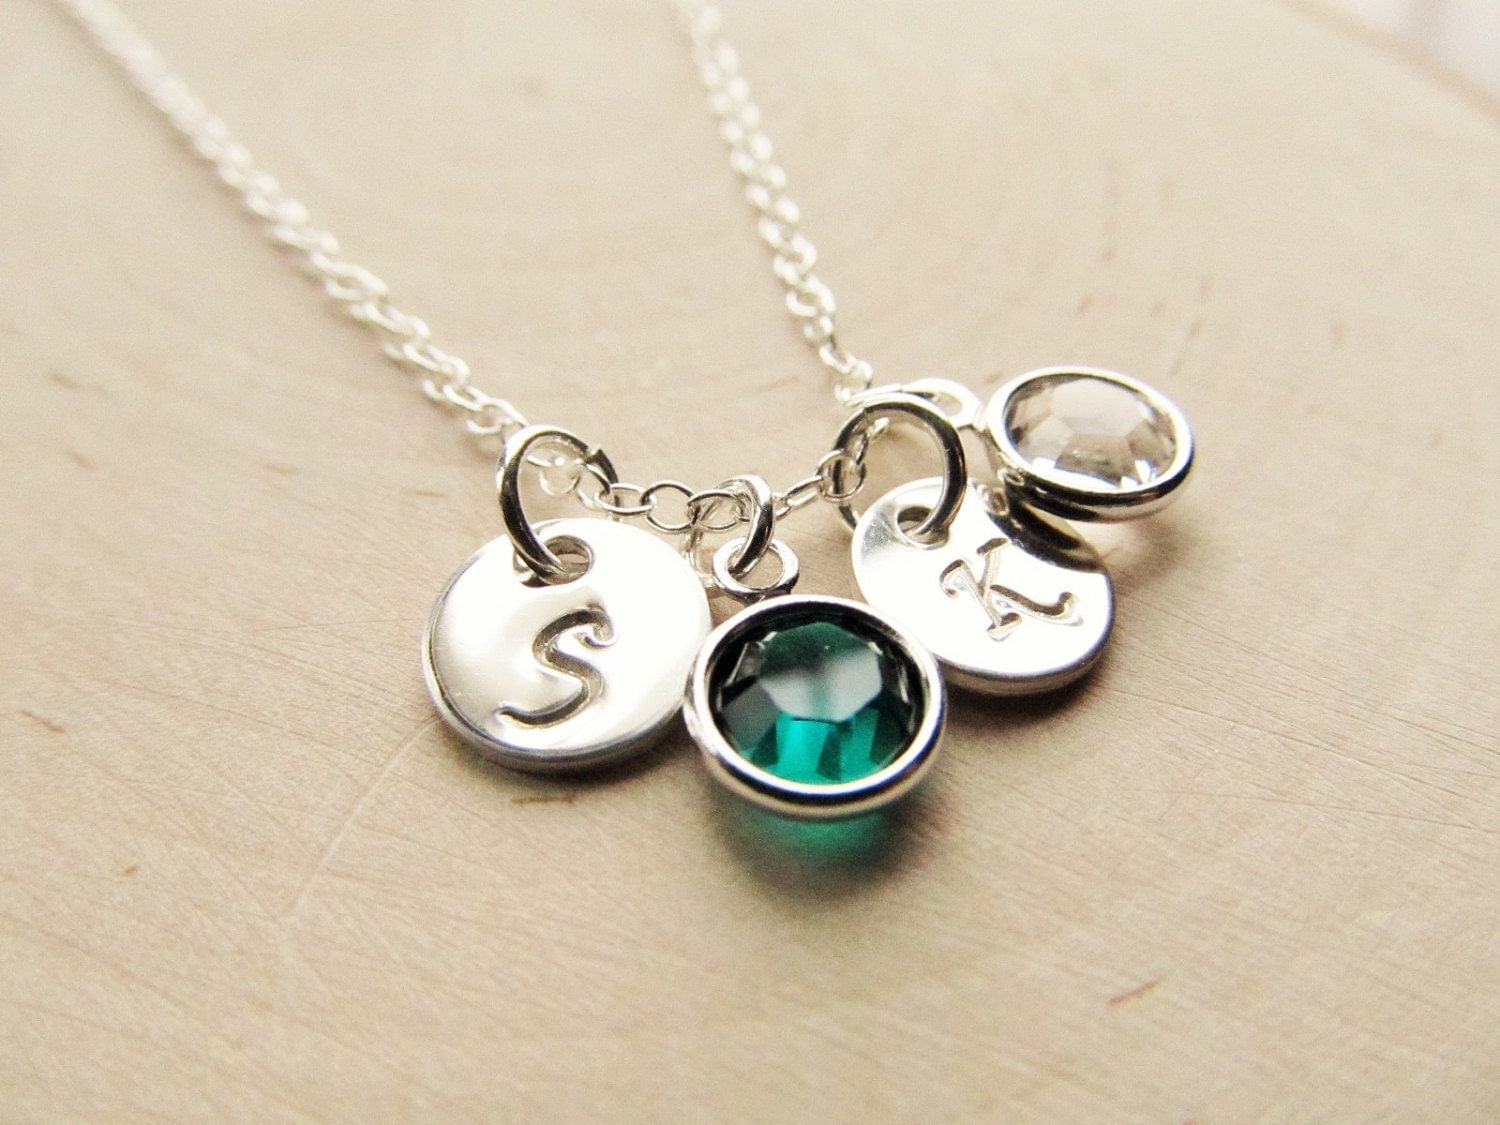 personalized necklace for mom sterling silver birthstone. Black Bedroom Furniture Sets. Home Design Ideas